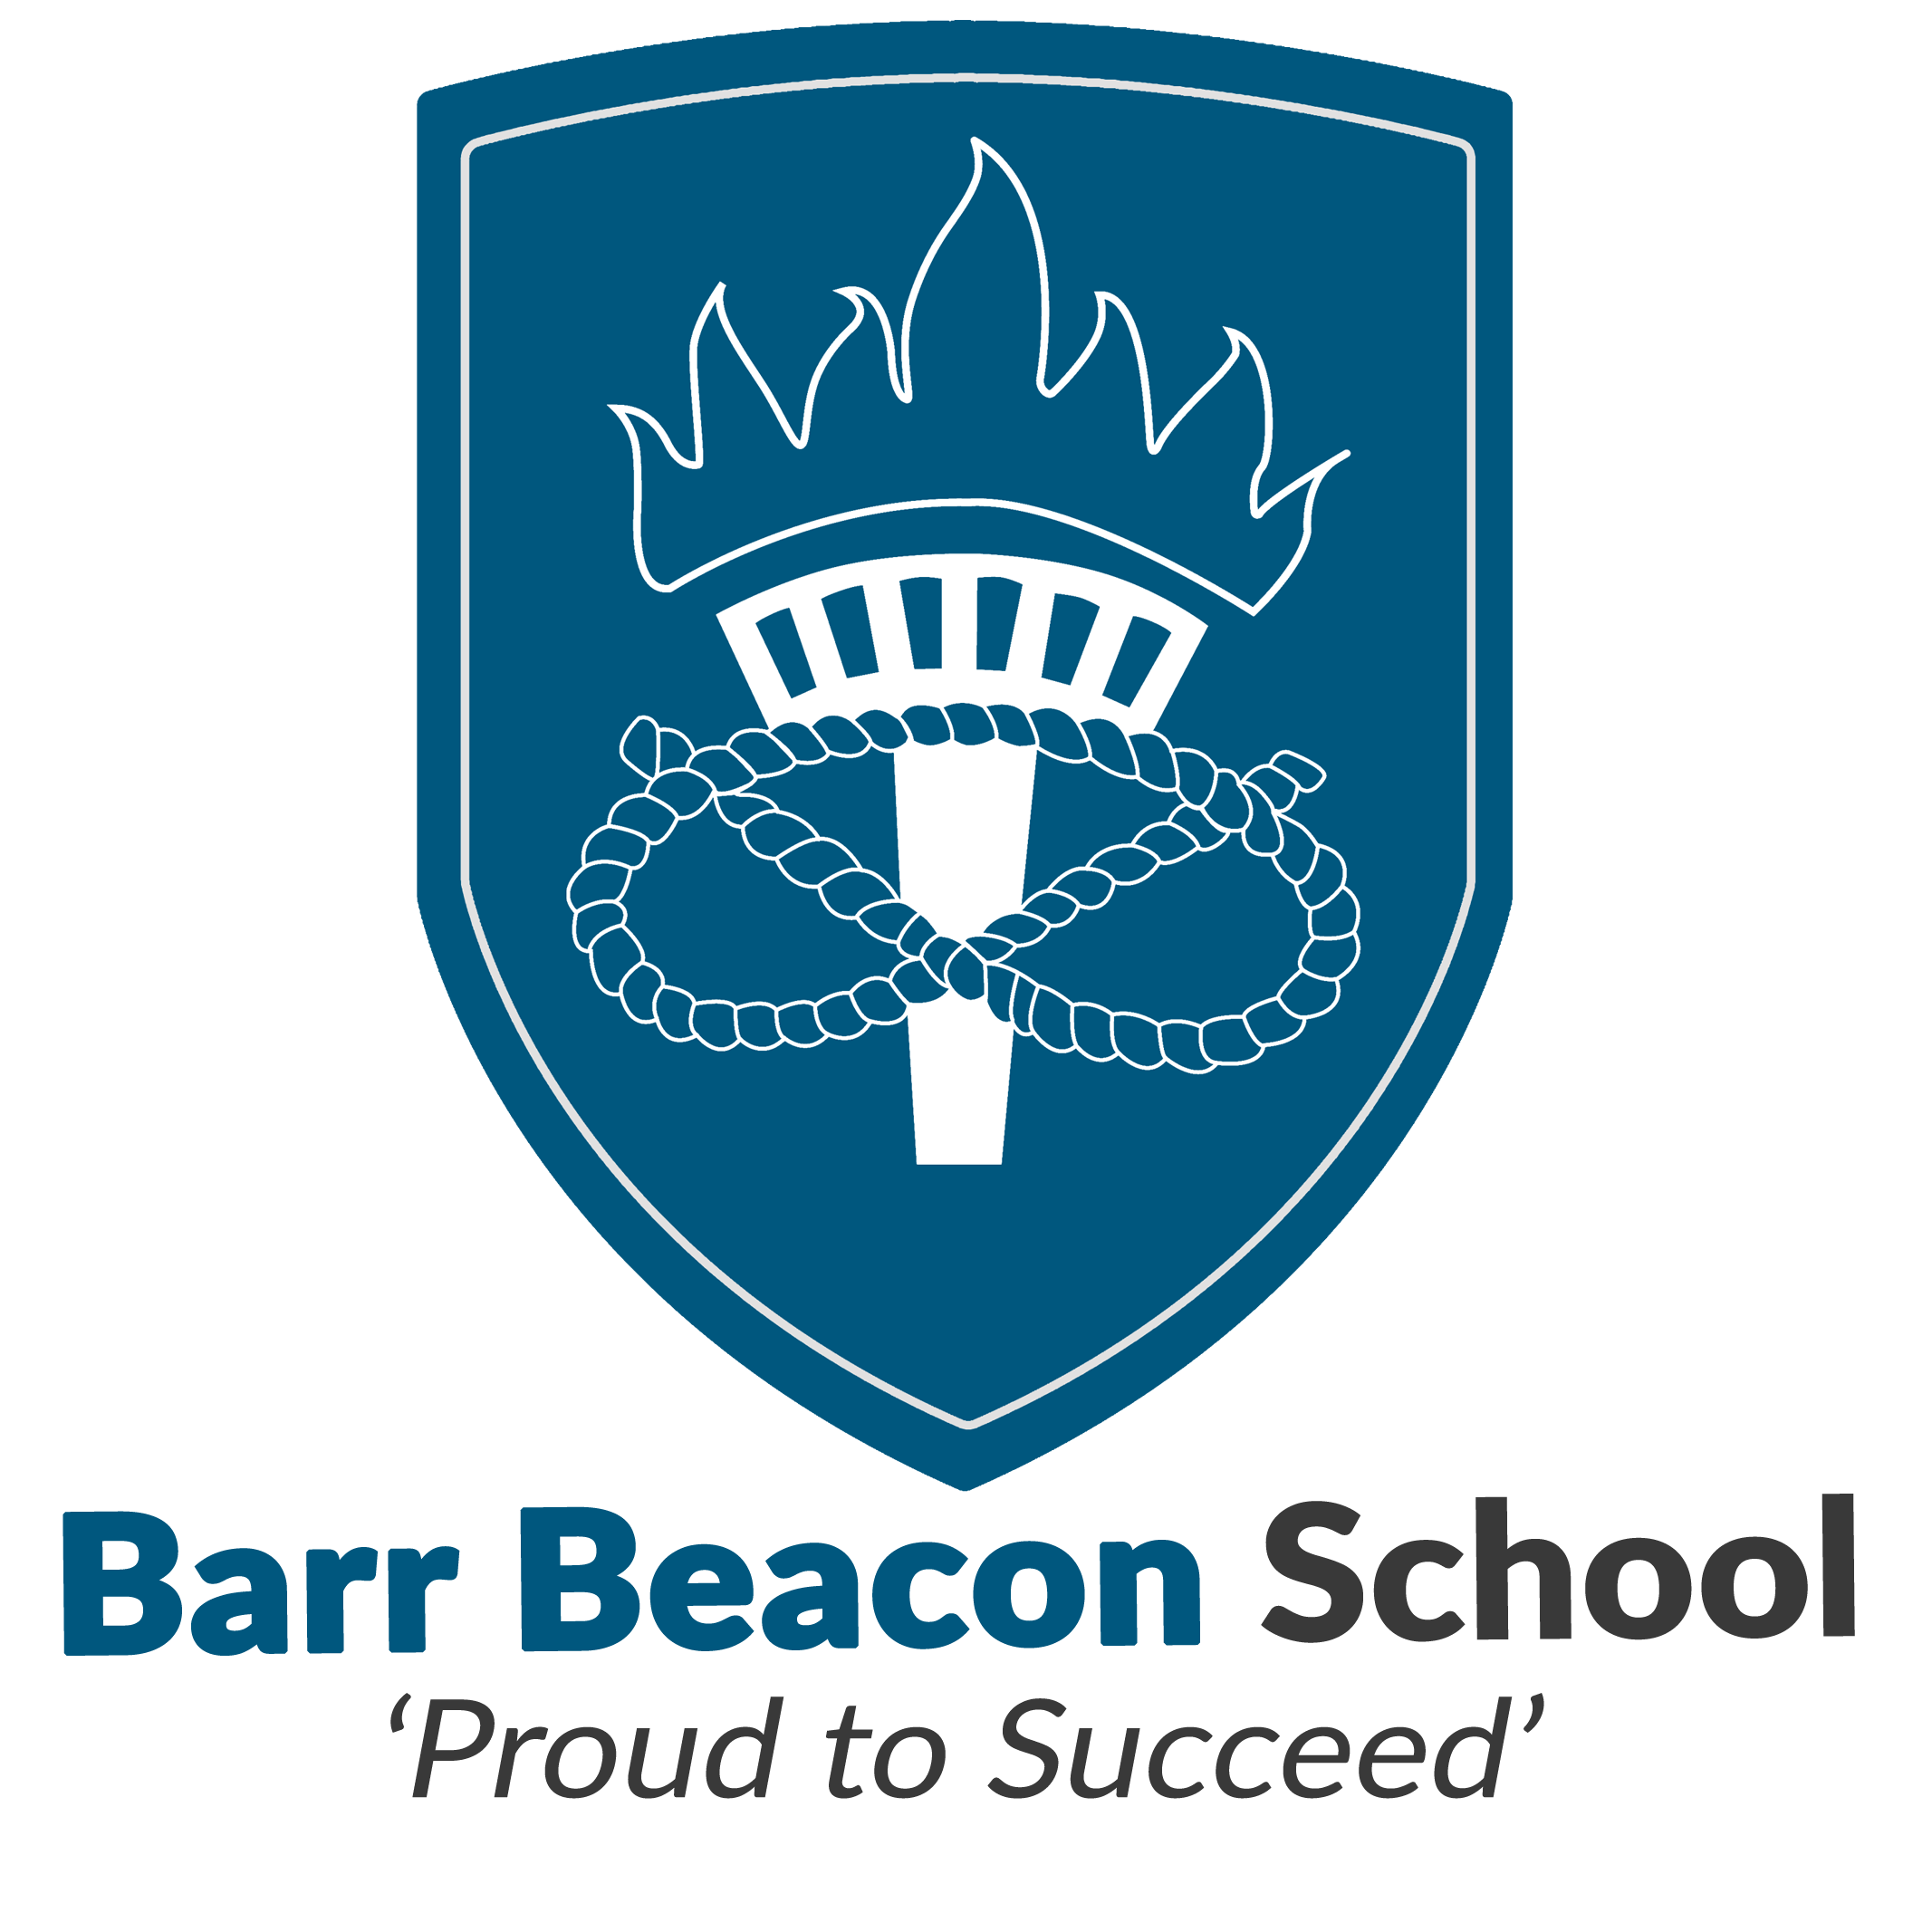 Barr Beacon School